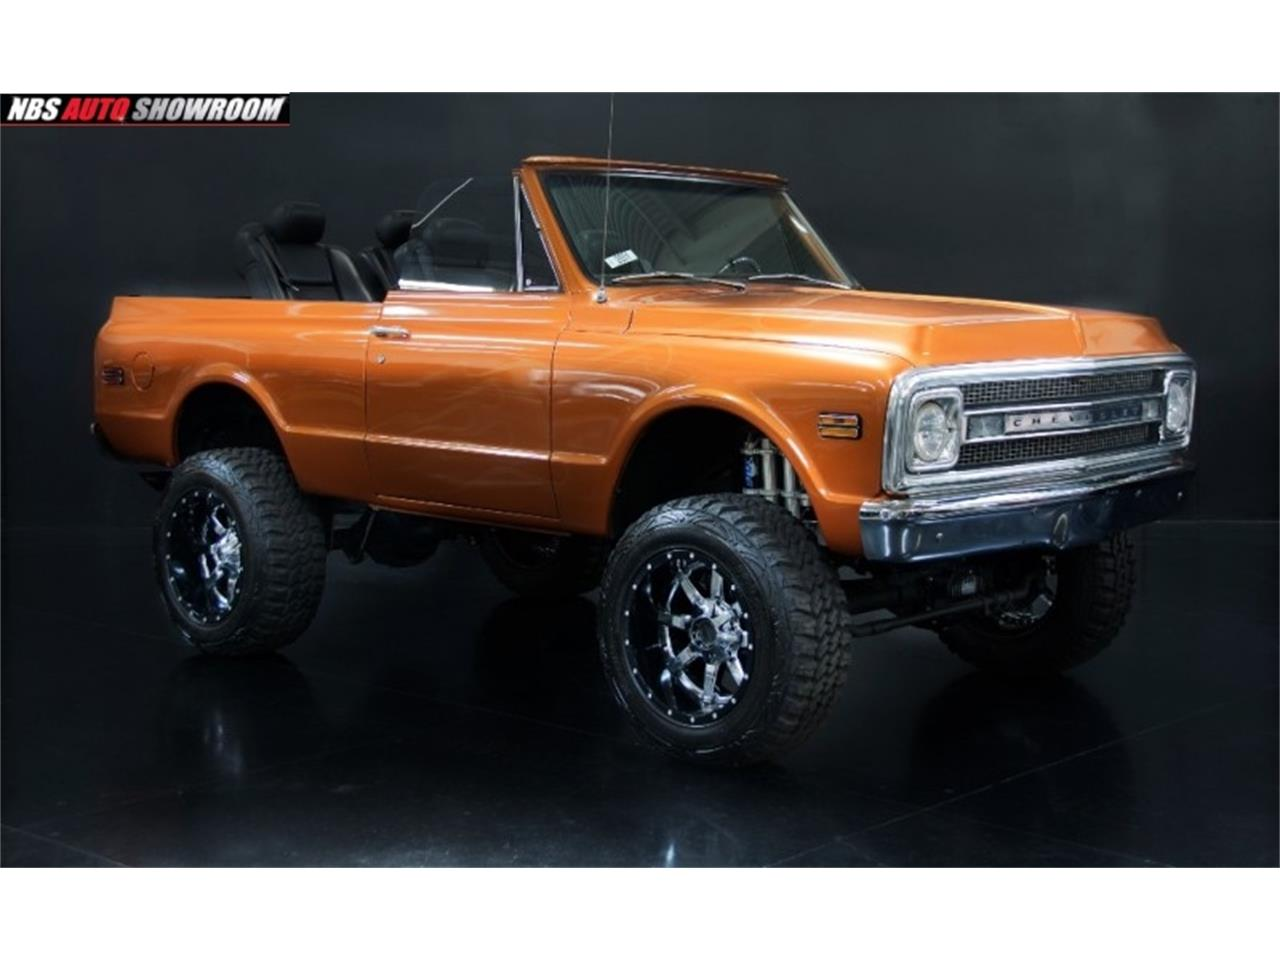 Large Picture of '70 Chevrolet Blazer Offered by NBS Auto Showroom - PR1D